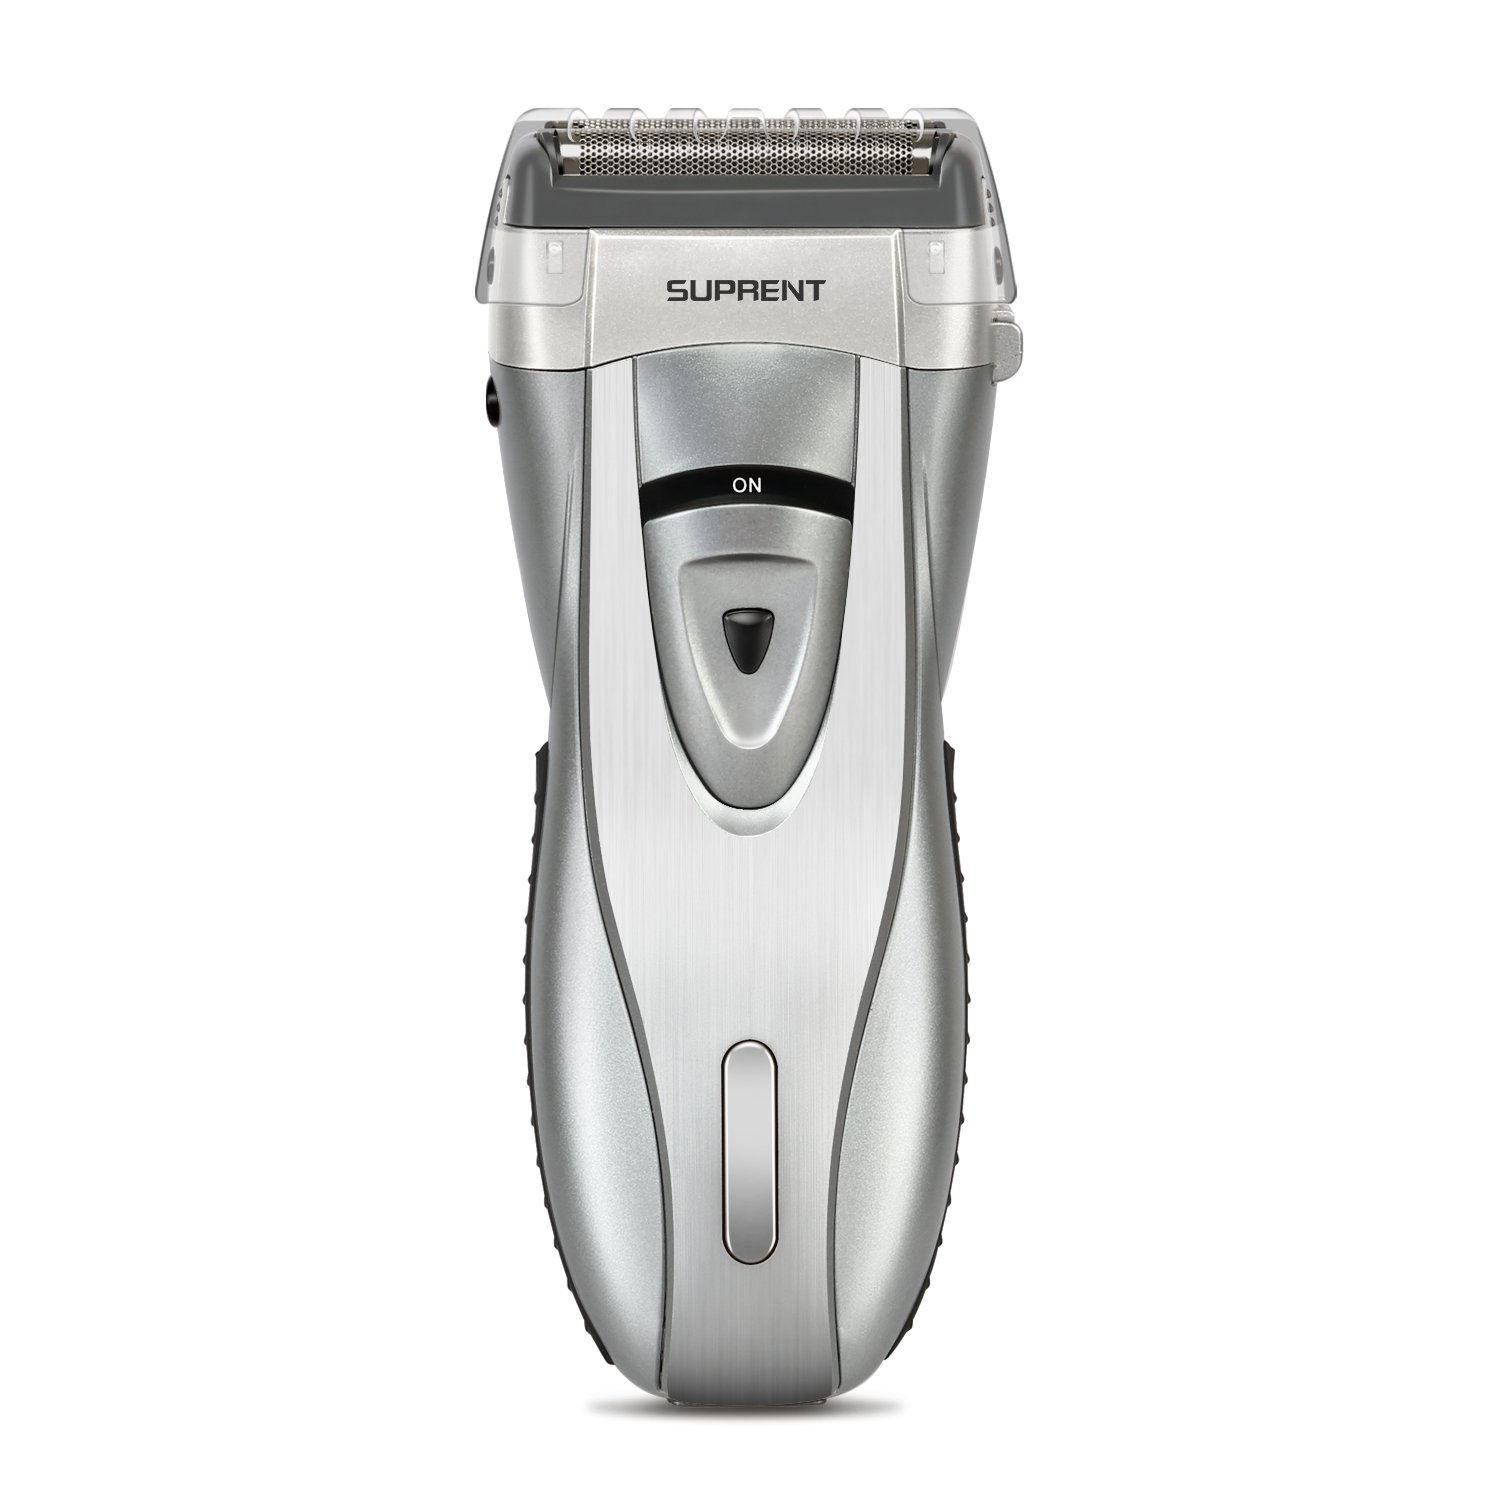 SUPRENT Electric Foil Shaver, 4-Blade Electric Razor For Men,Shaver with Lithium Ion Battery and Push-up Precision Trimmer, Safe Travel Lock Silver